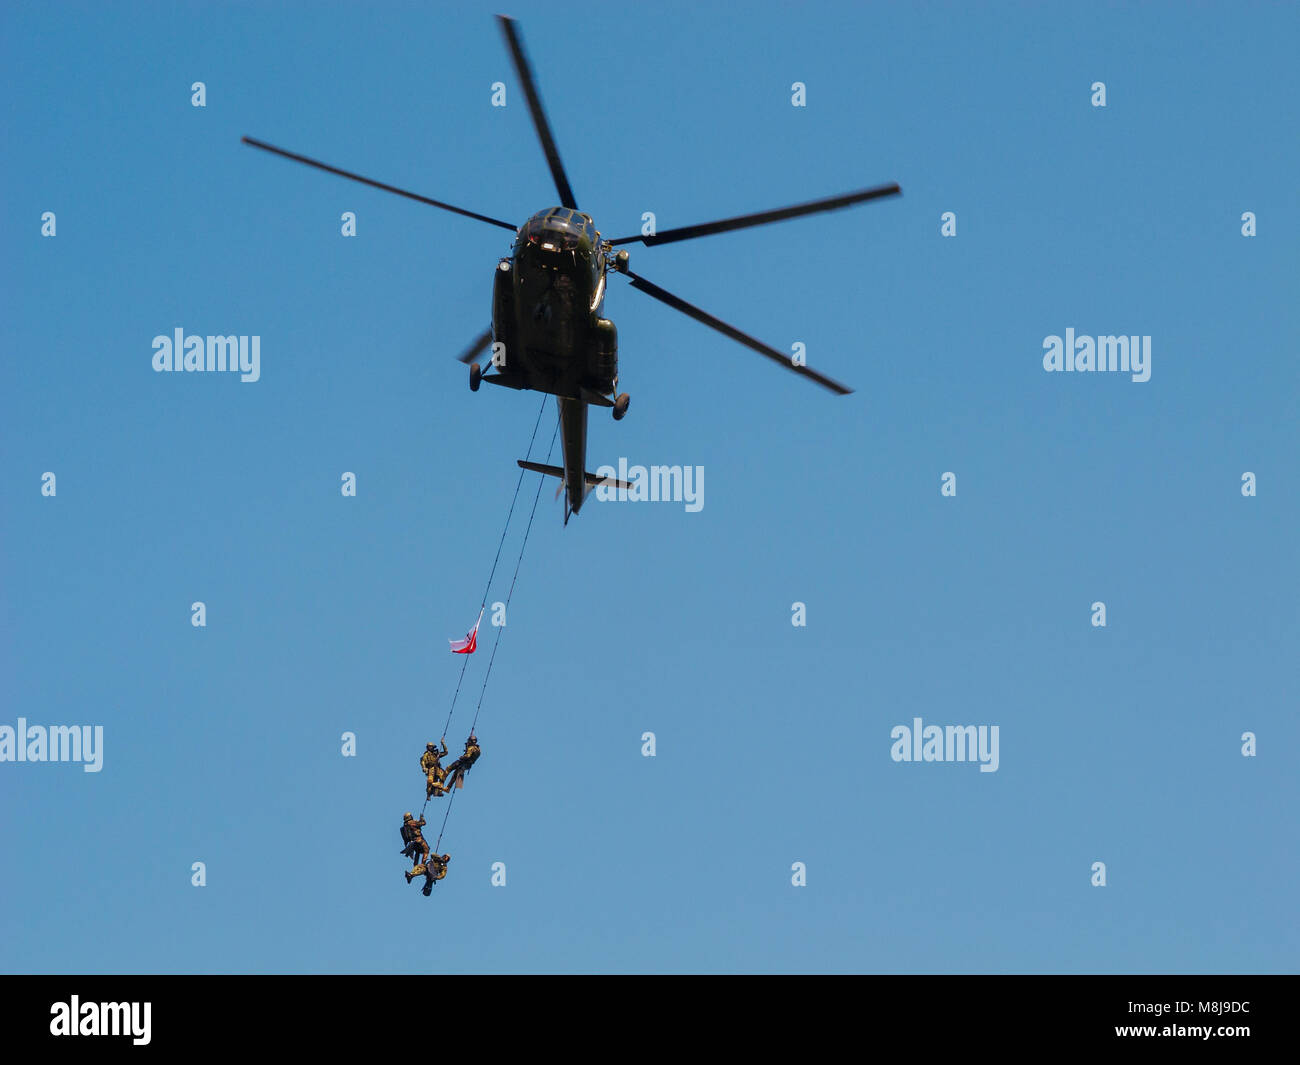 WARSAW, POLAND - SEPTEMBER 13, 2014: Polish GROM Special Forces show off their skills hanging on ropes from a helicopter. Stock Photo